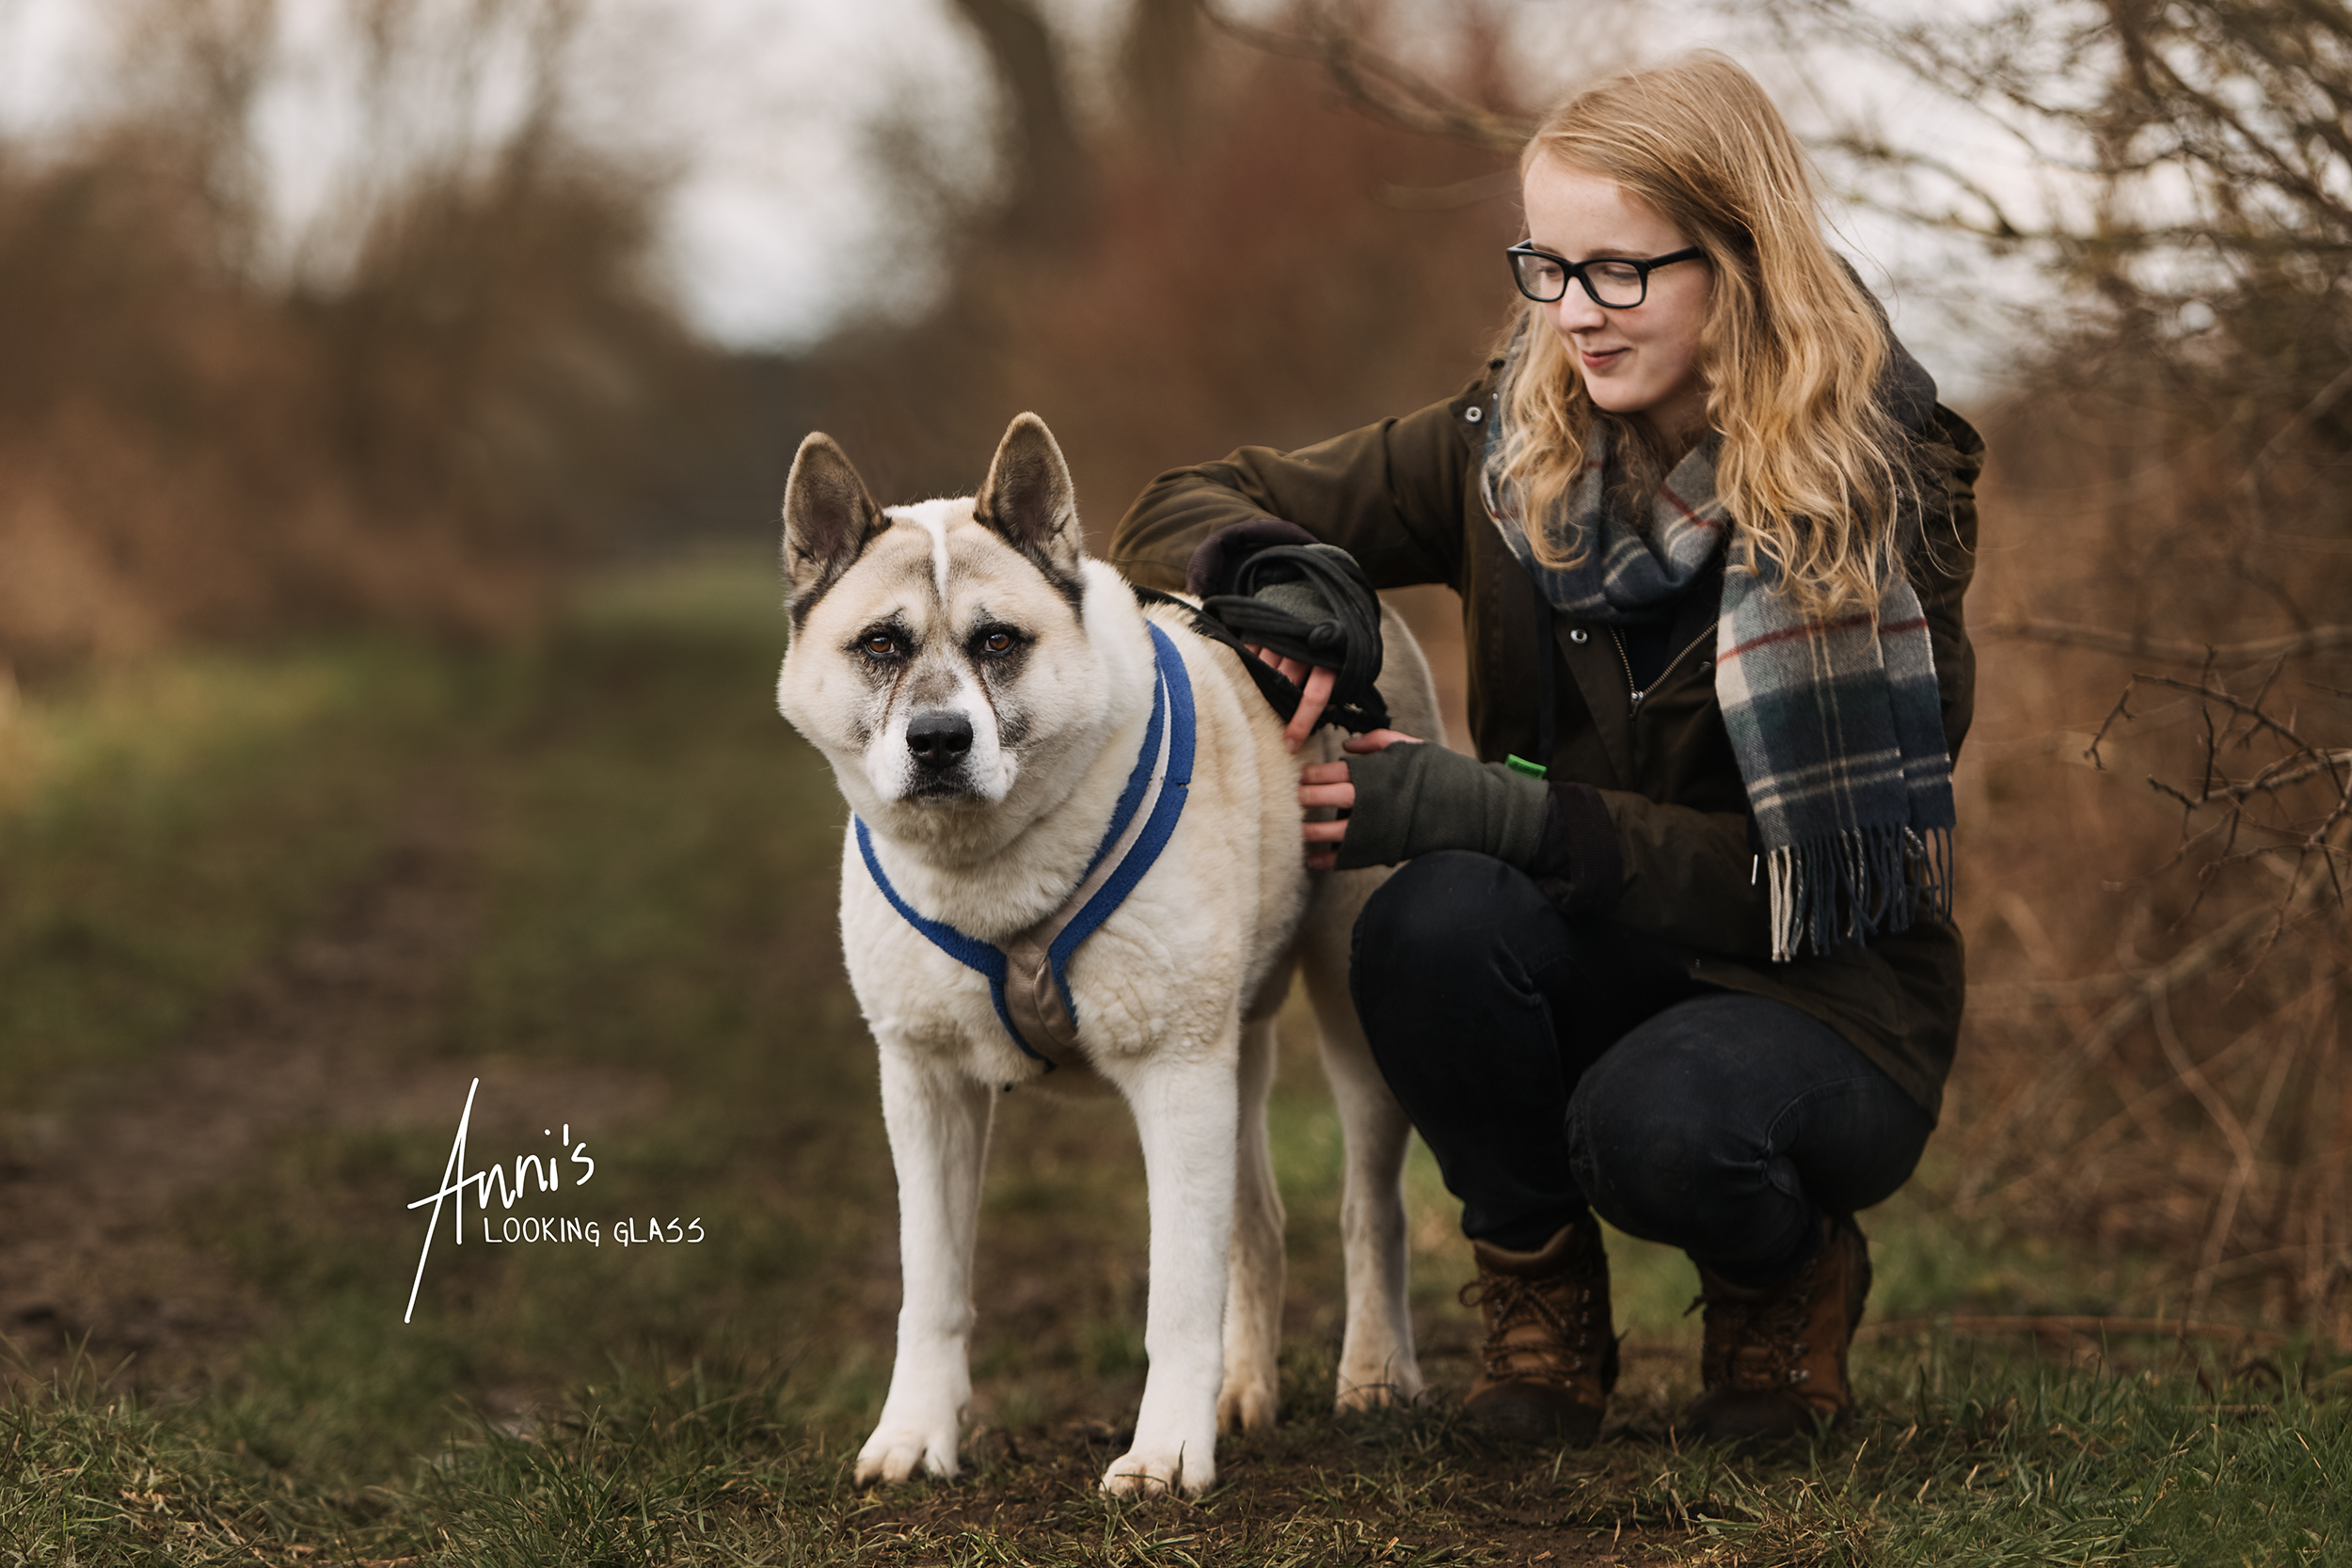 Dog Photographer: A girl and a big white dog near Hathern, Loughborough, Leicestershire. 6th March, 2018